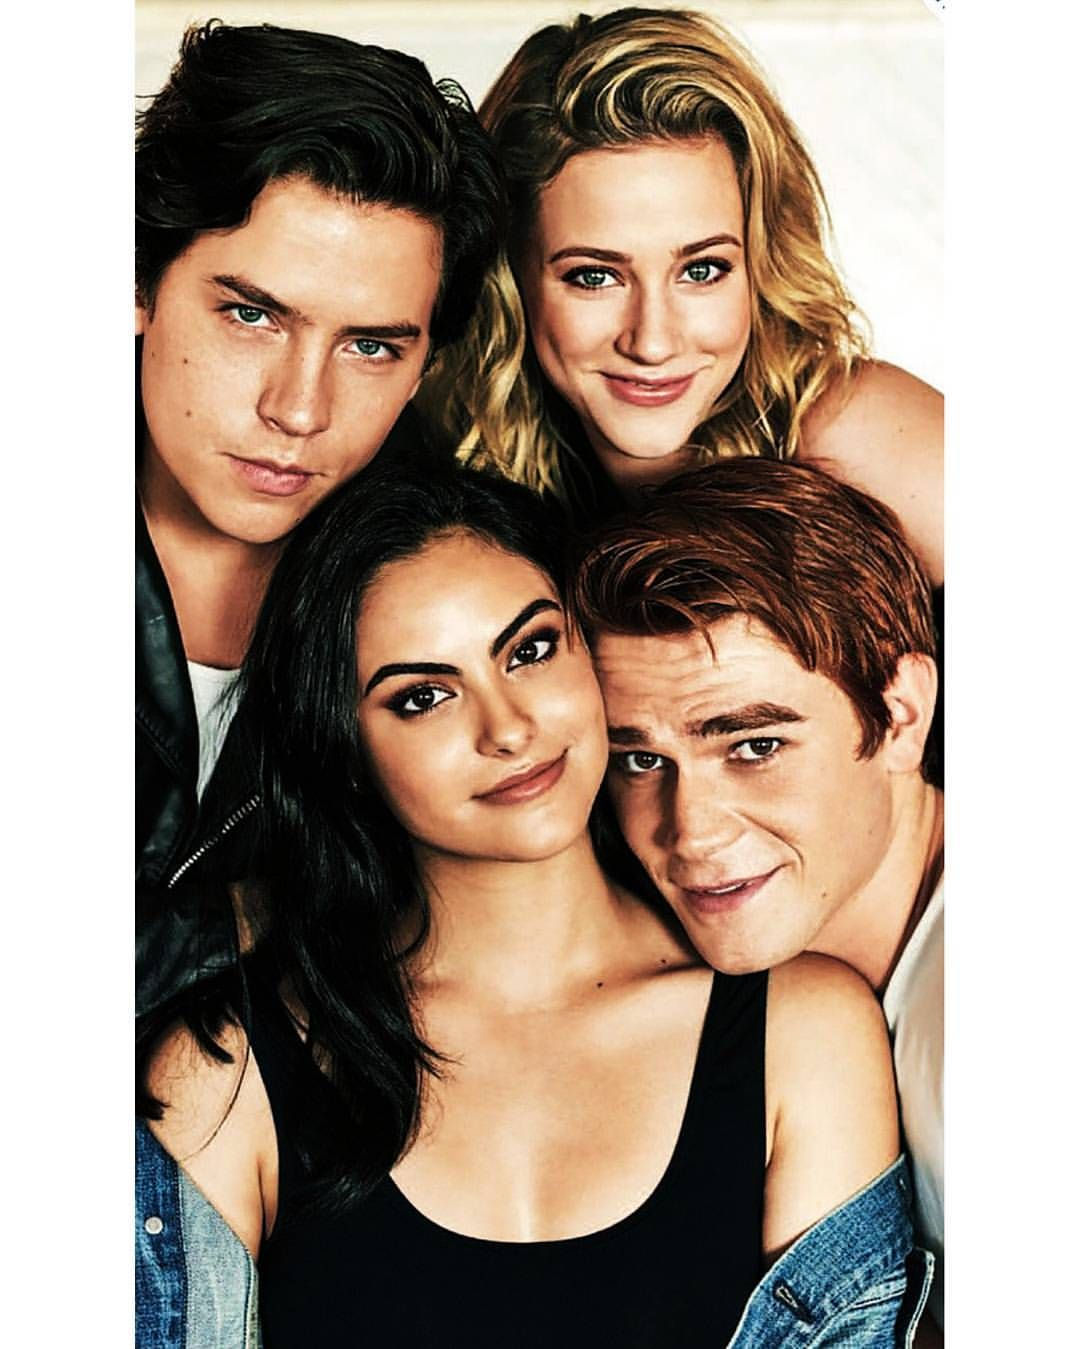 Cute Friendship Wallpapers Hd Core Four Riverdale Pinterest Netflix Tvs And